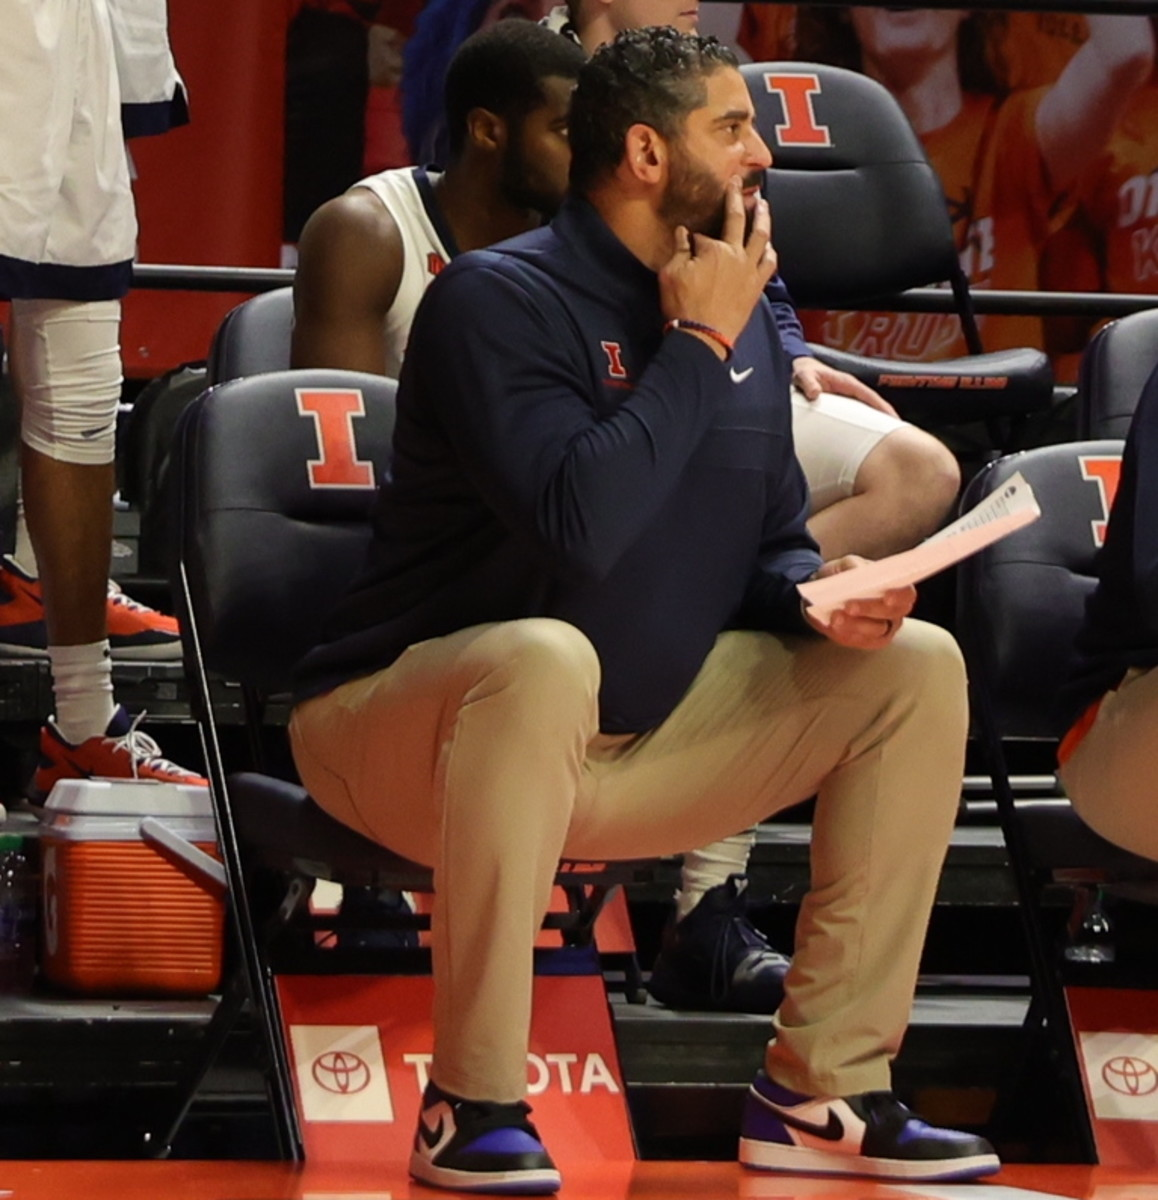 Multiple reports have confirmed Orlando Antigua will be leaving his position as an assistant coach at Illinois in order to join John Calipari's coaching staff at Kentucky